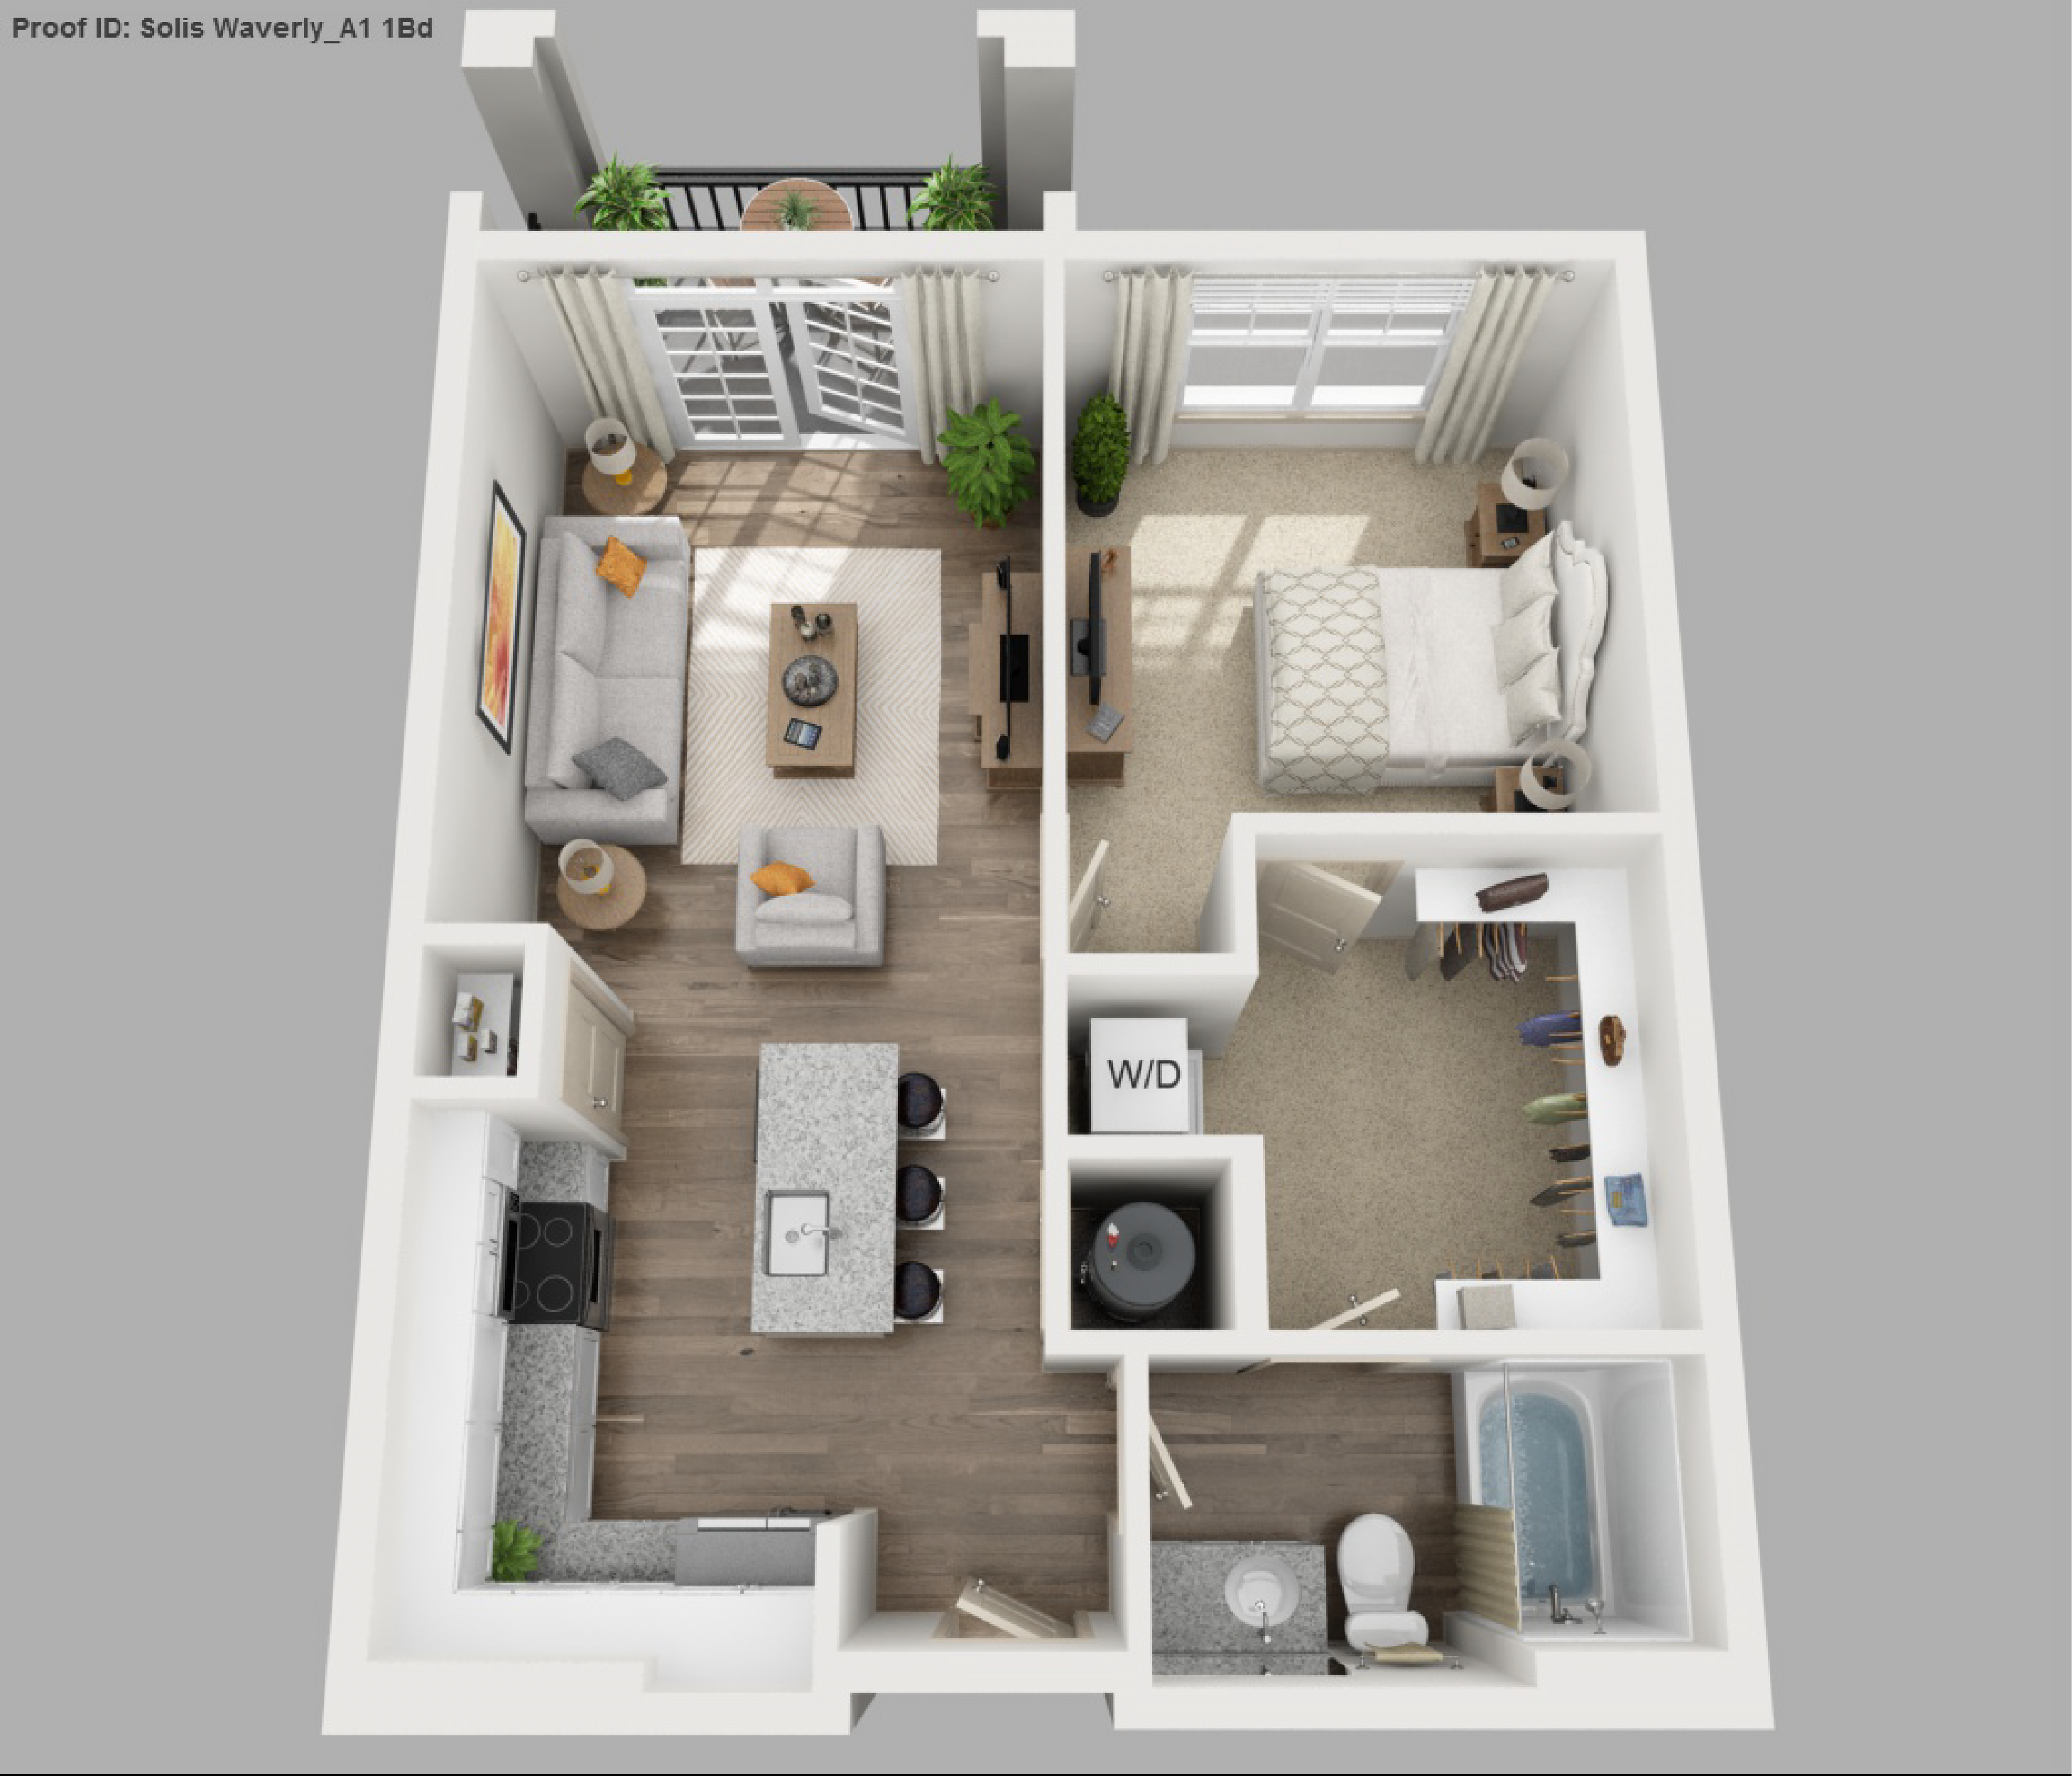 in addition 3dplans together with Floor Plans moreover Images Of Building Elevation moreover 56 The Wilkinson. on 3 bedroom apartment floor plans 3d